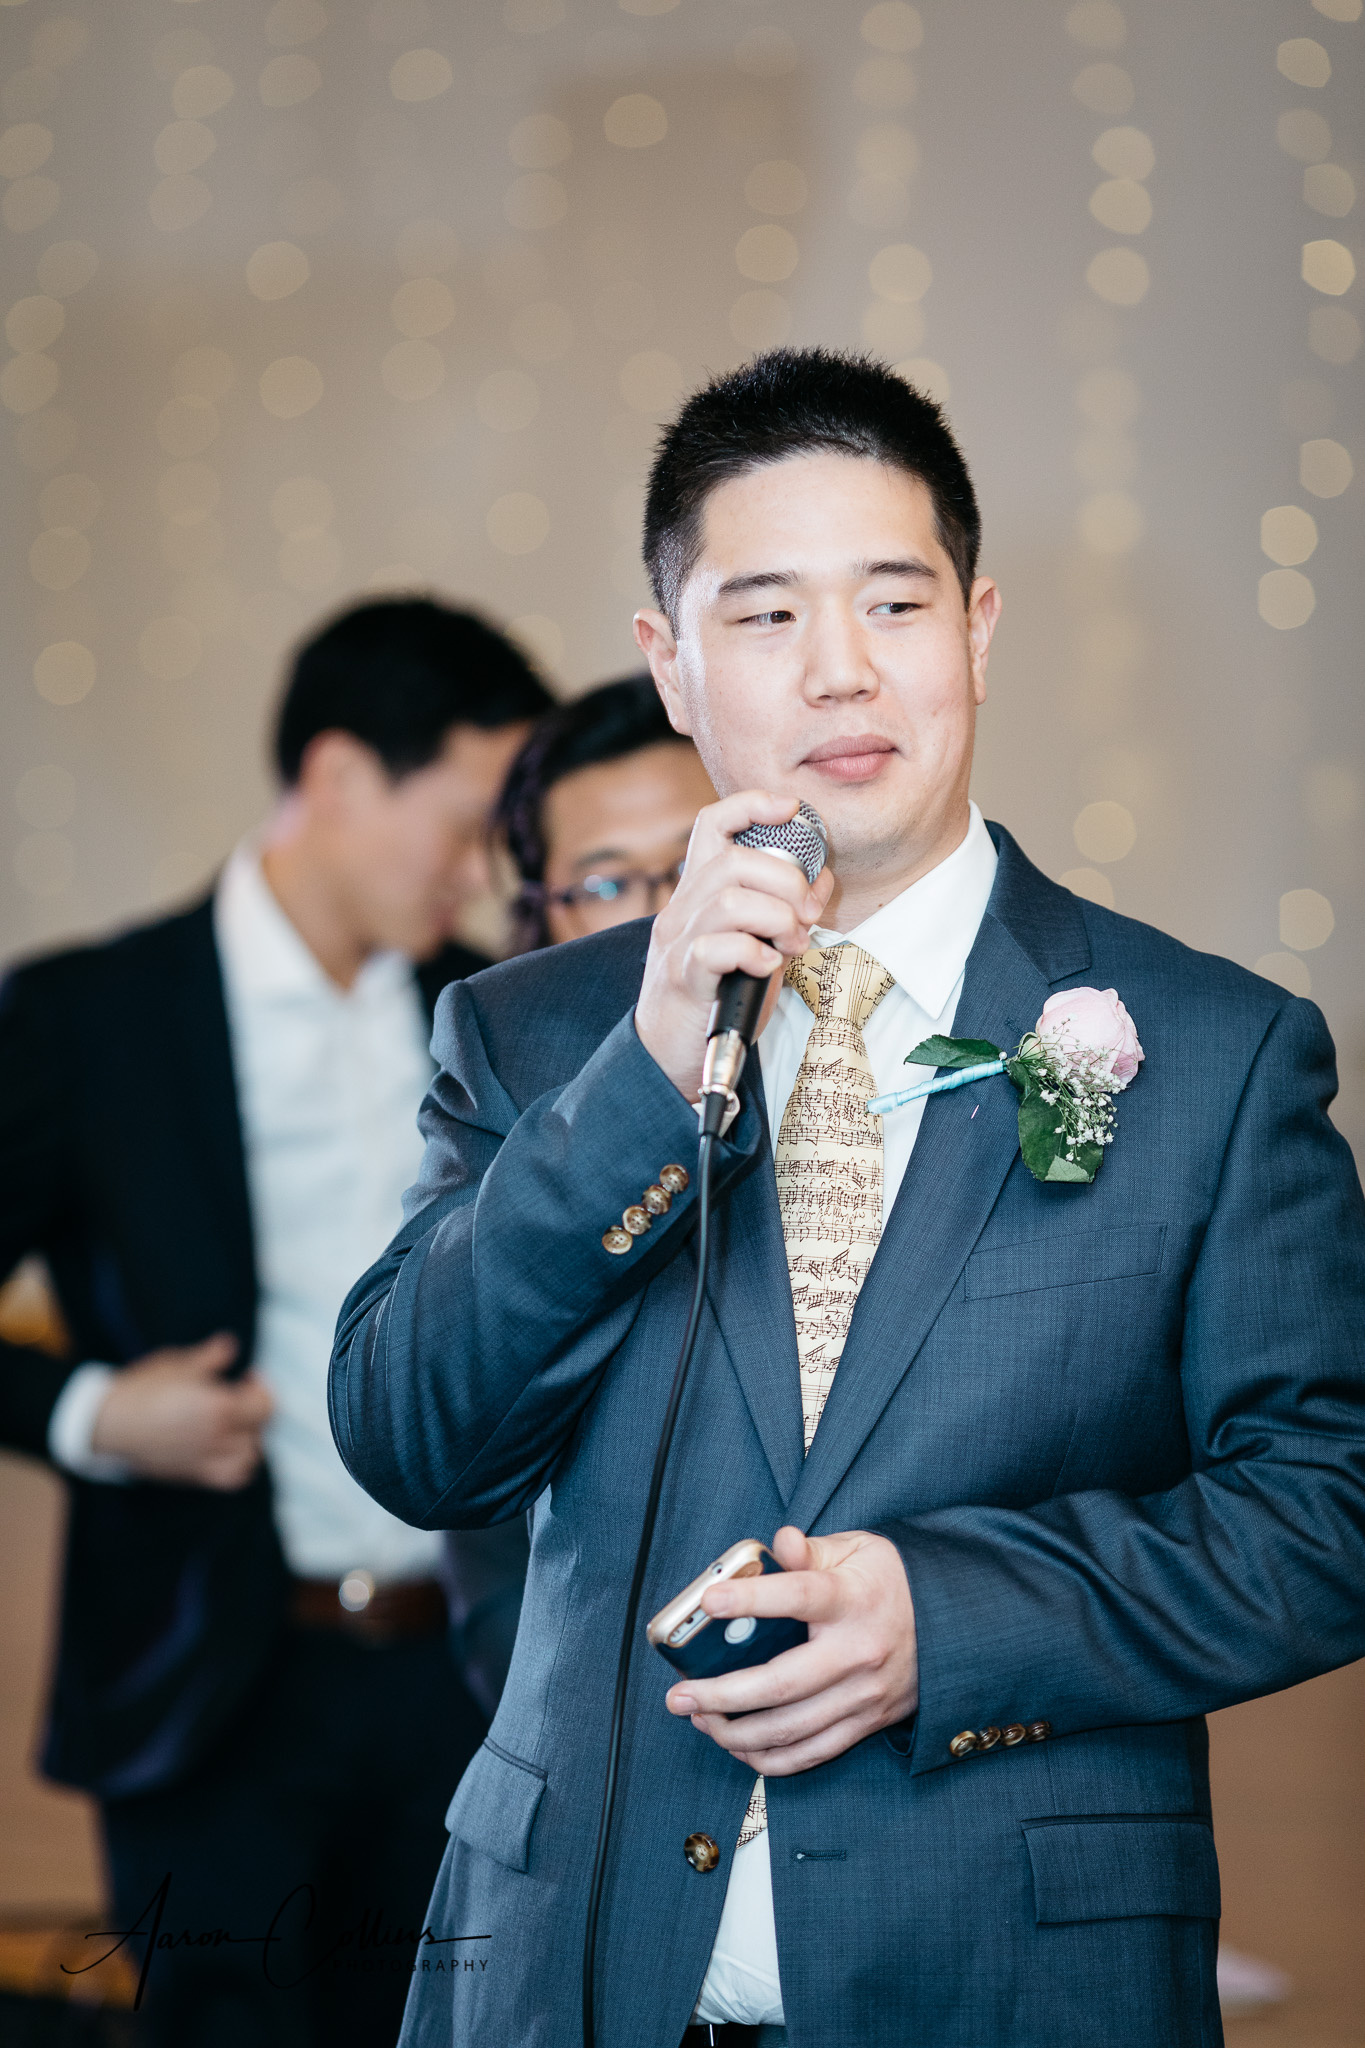 Best man gives a toast at the reception